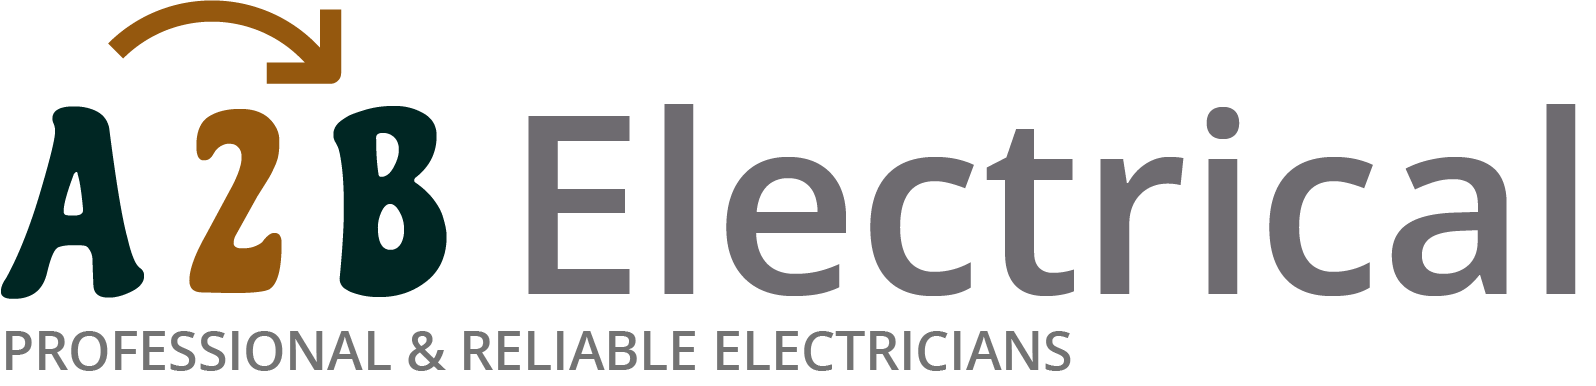 If you have electrical wiring problems in Mill Hill, we can provide an electrician to have a look for you.